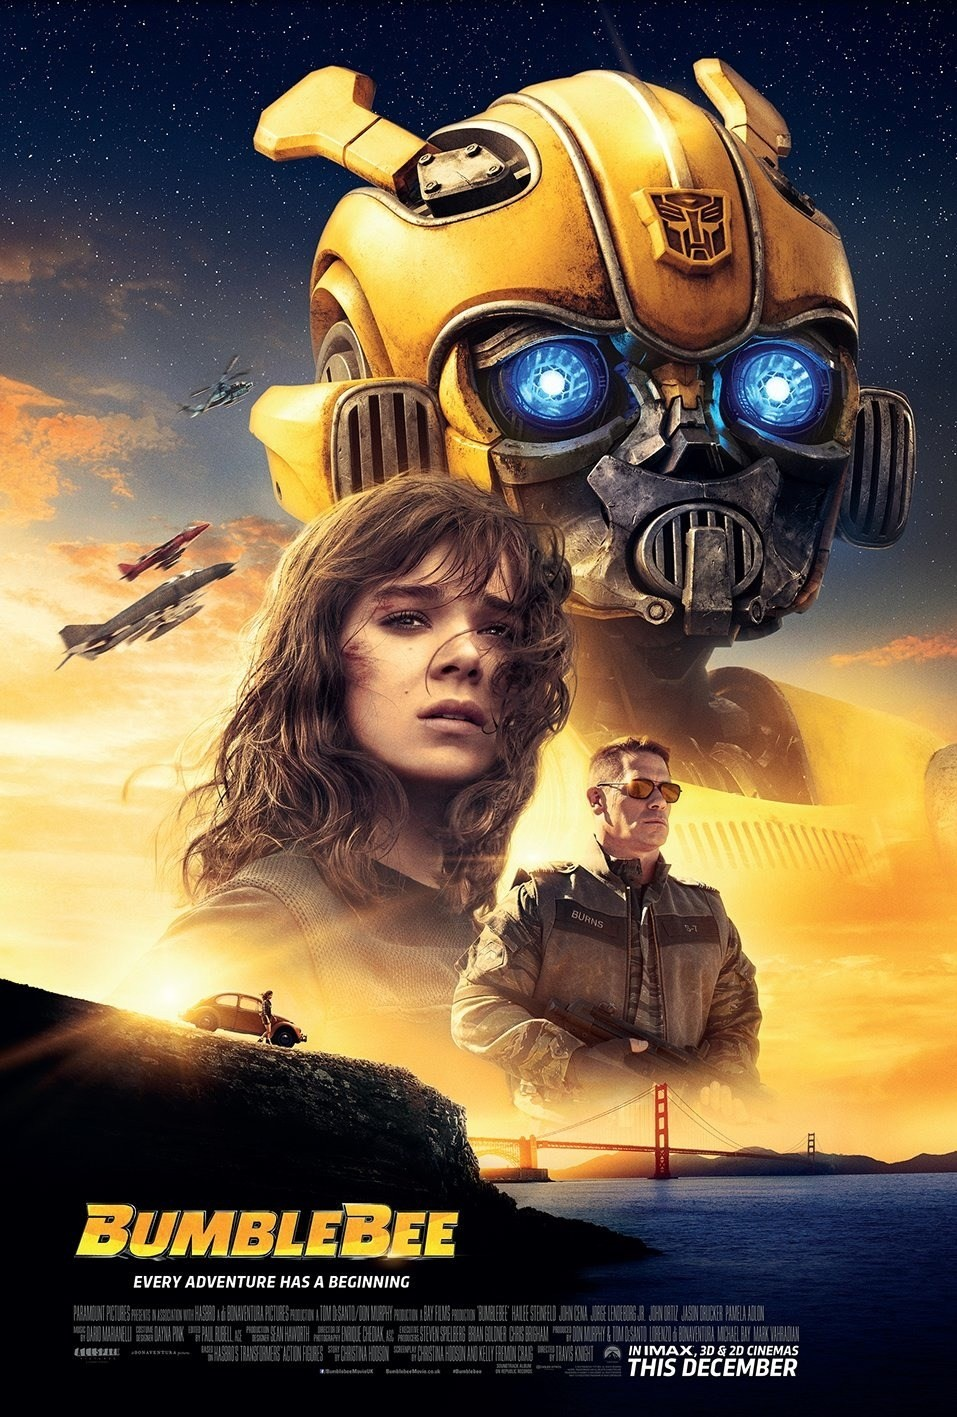 Transformers News: Transformers Bumblebee Opens in Third Place in Opening Weekend